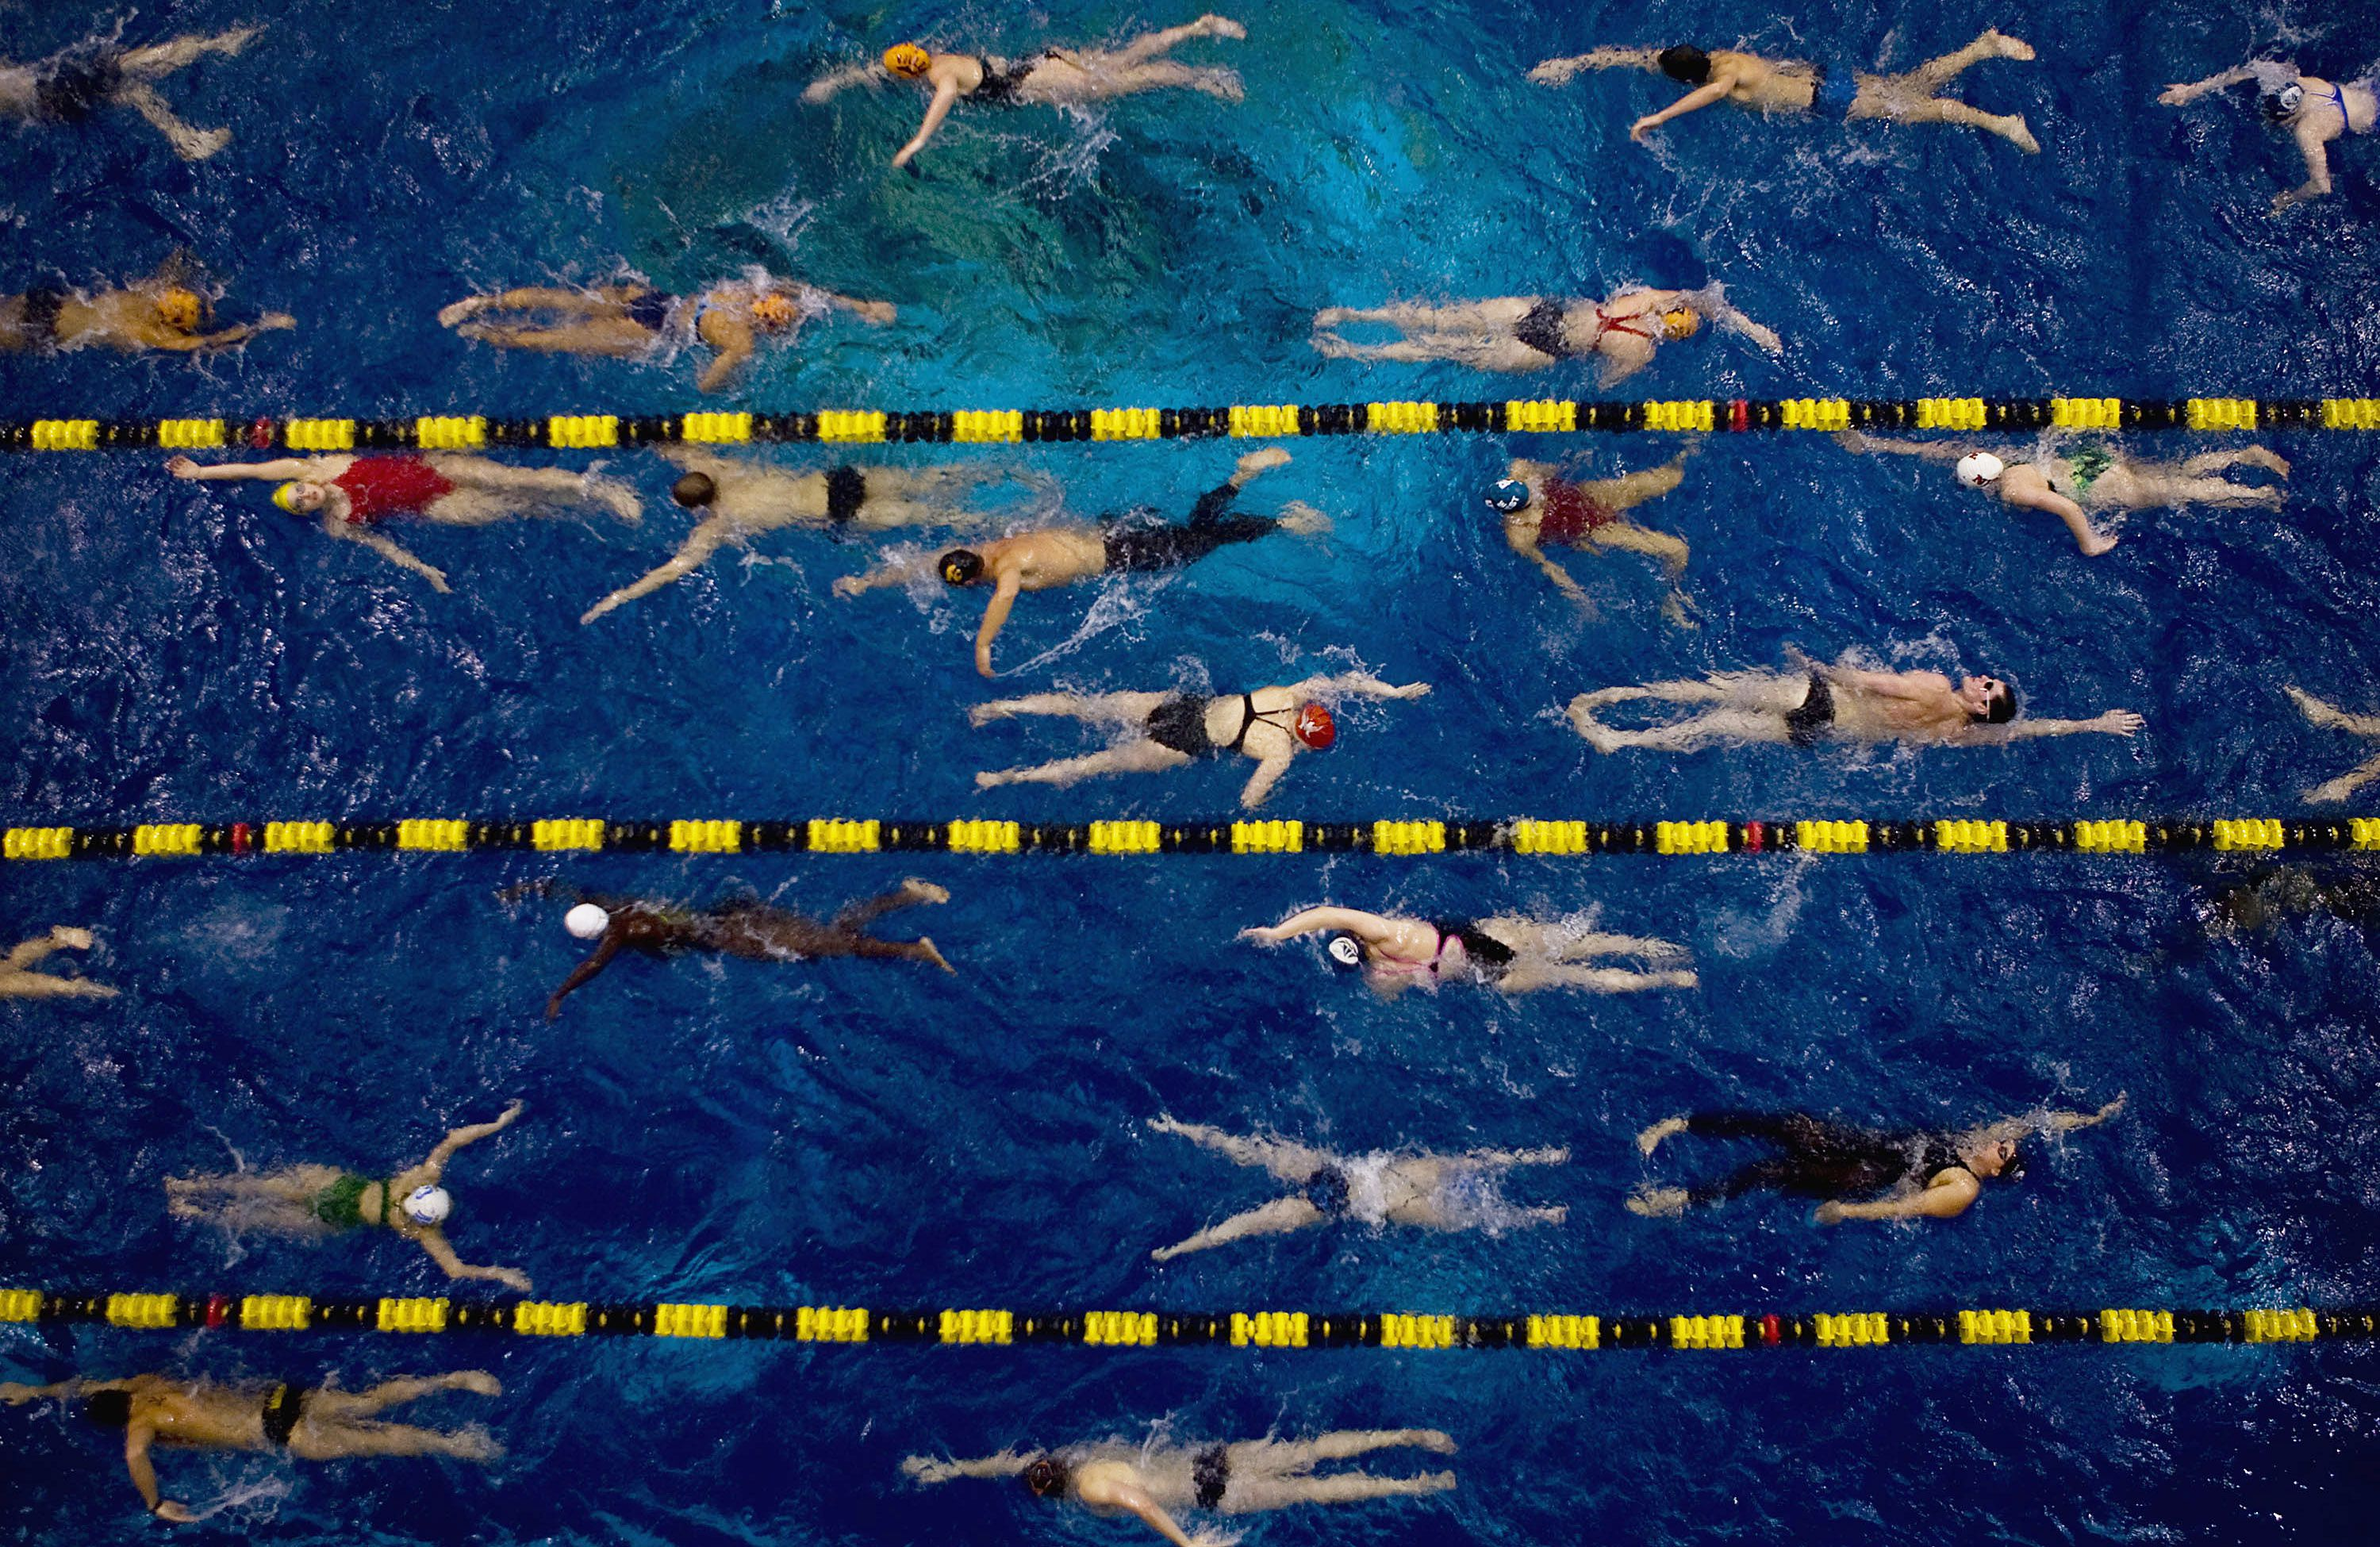 Lap Swimming Etiquette For Crowded Pools